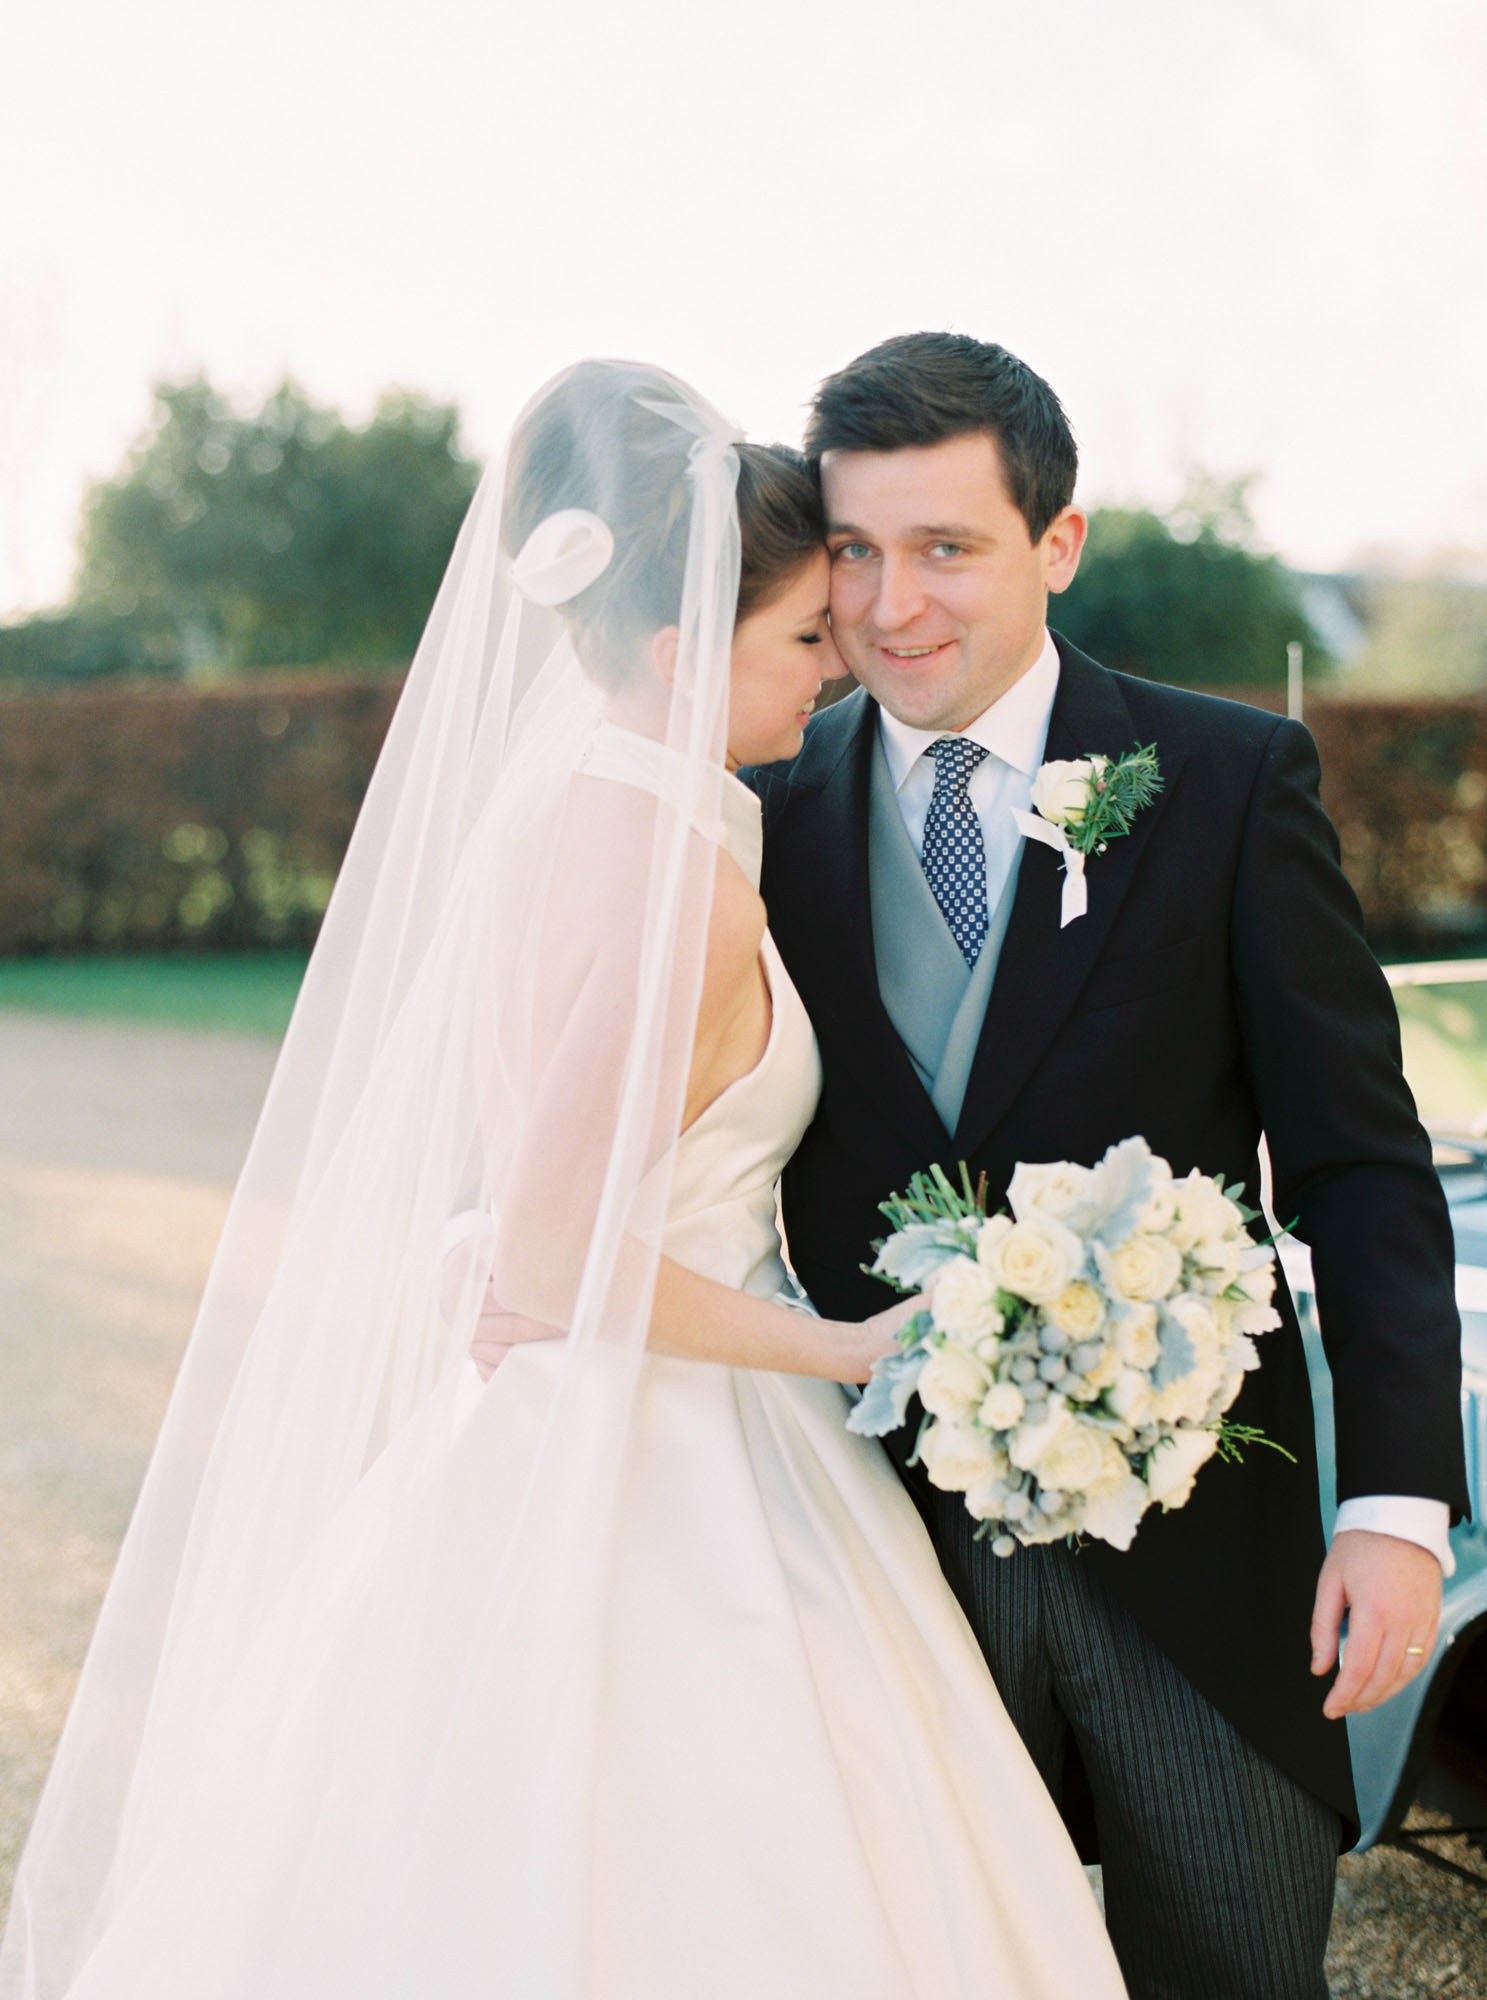 Romantic portrait of bride and groom at Goodwood House wedding